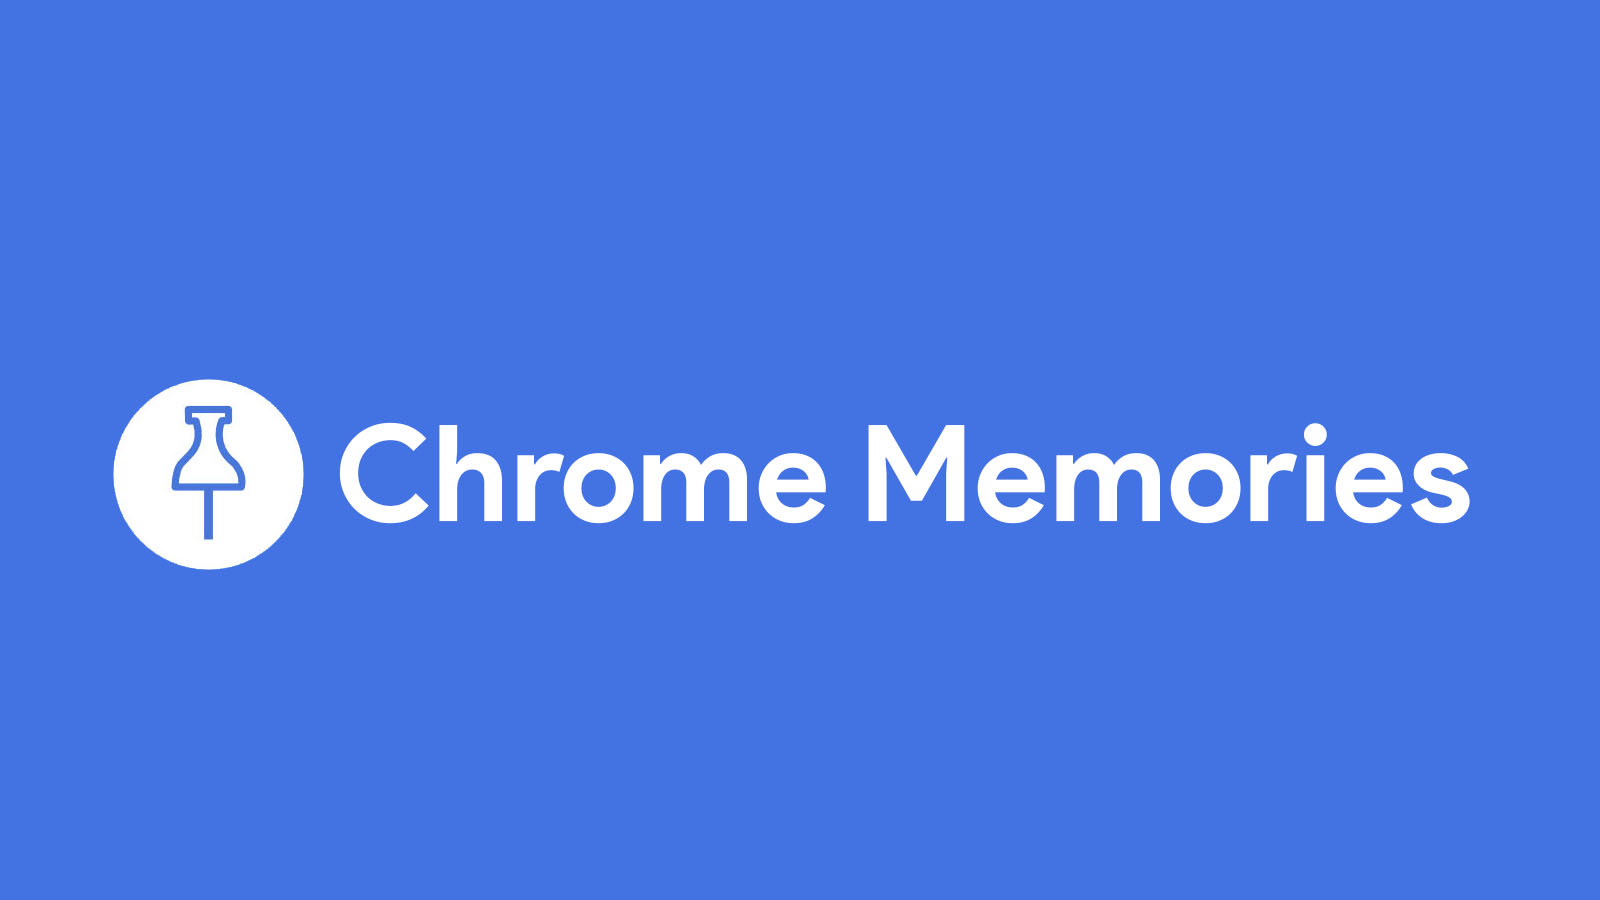 Chrome Memories feature could replace your browser history, Google Activity and more